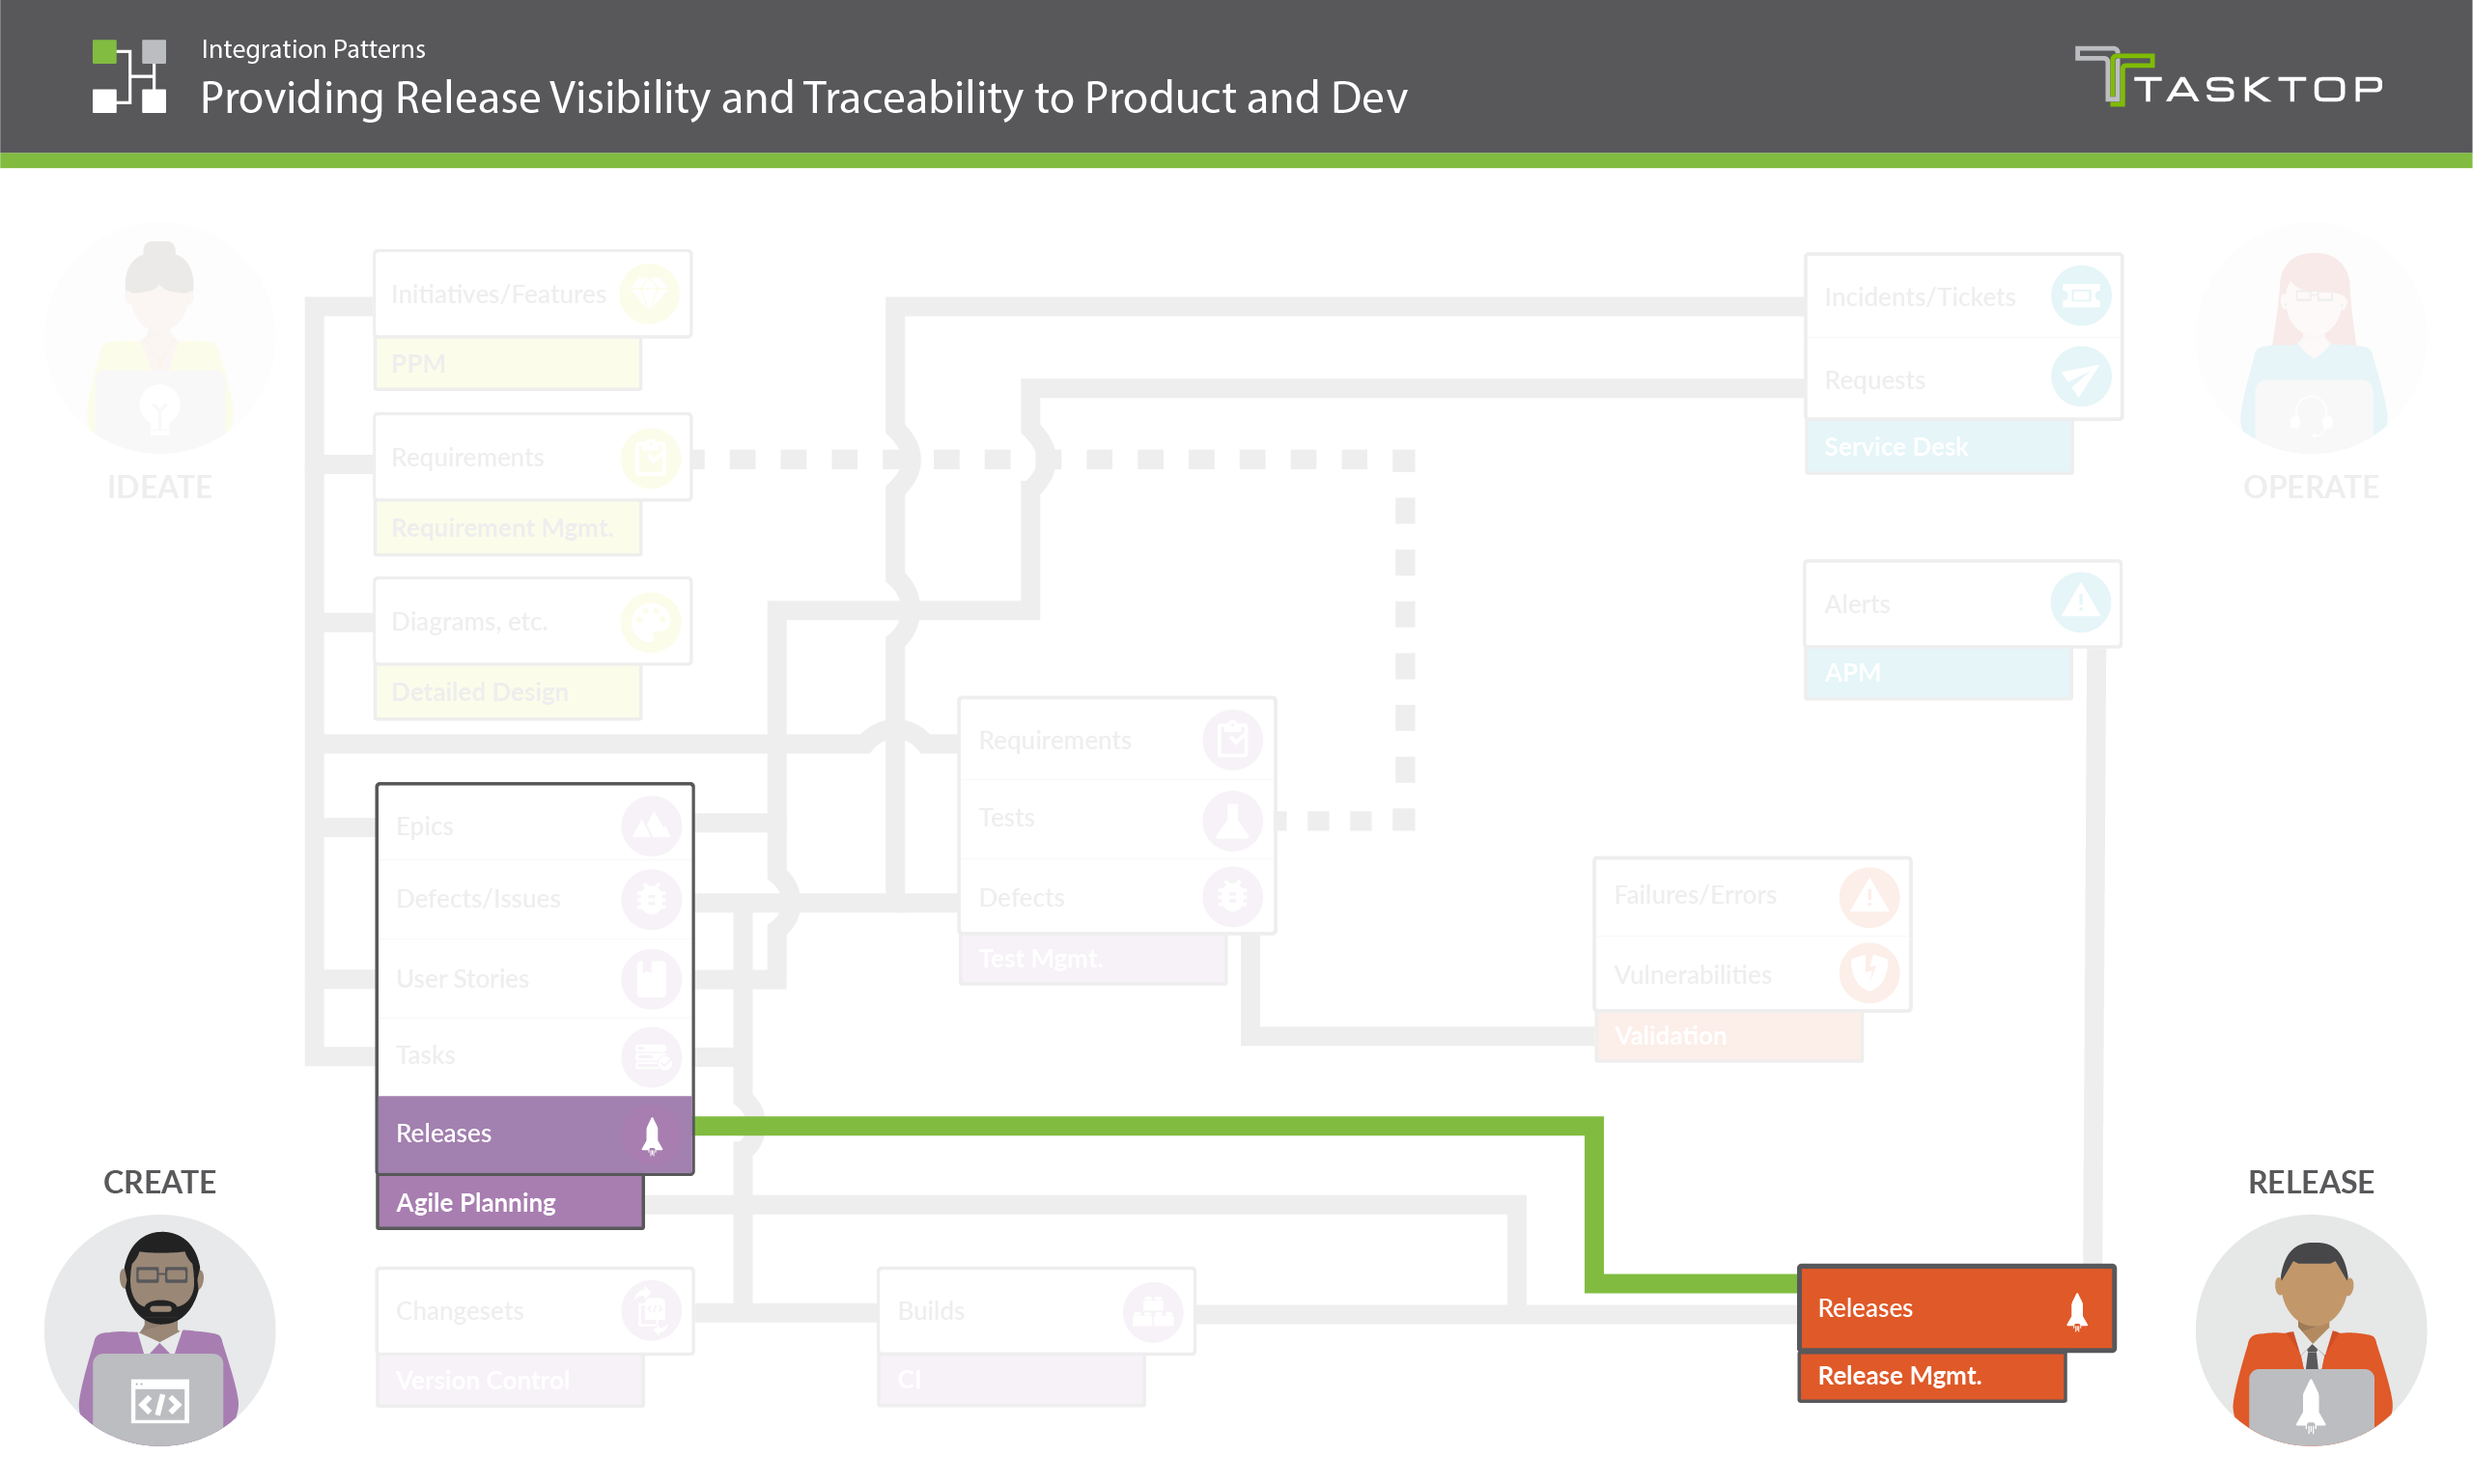 Integration Pattern Providing Release Visibility and Traceability to Product and Dev